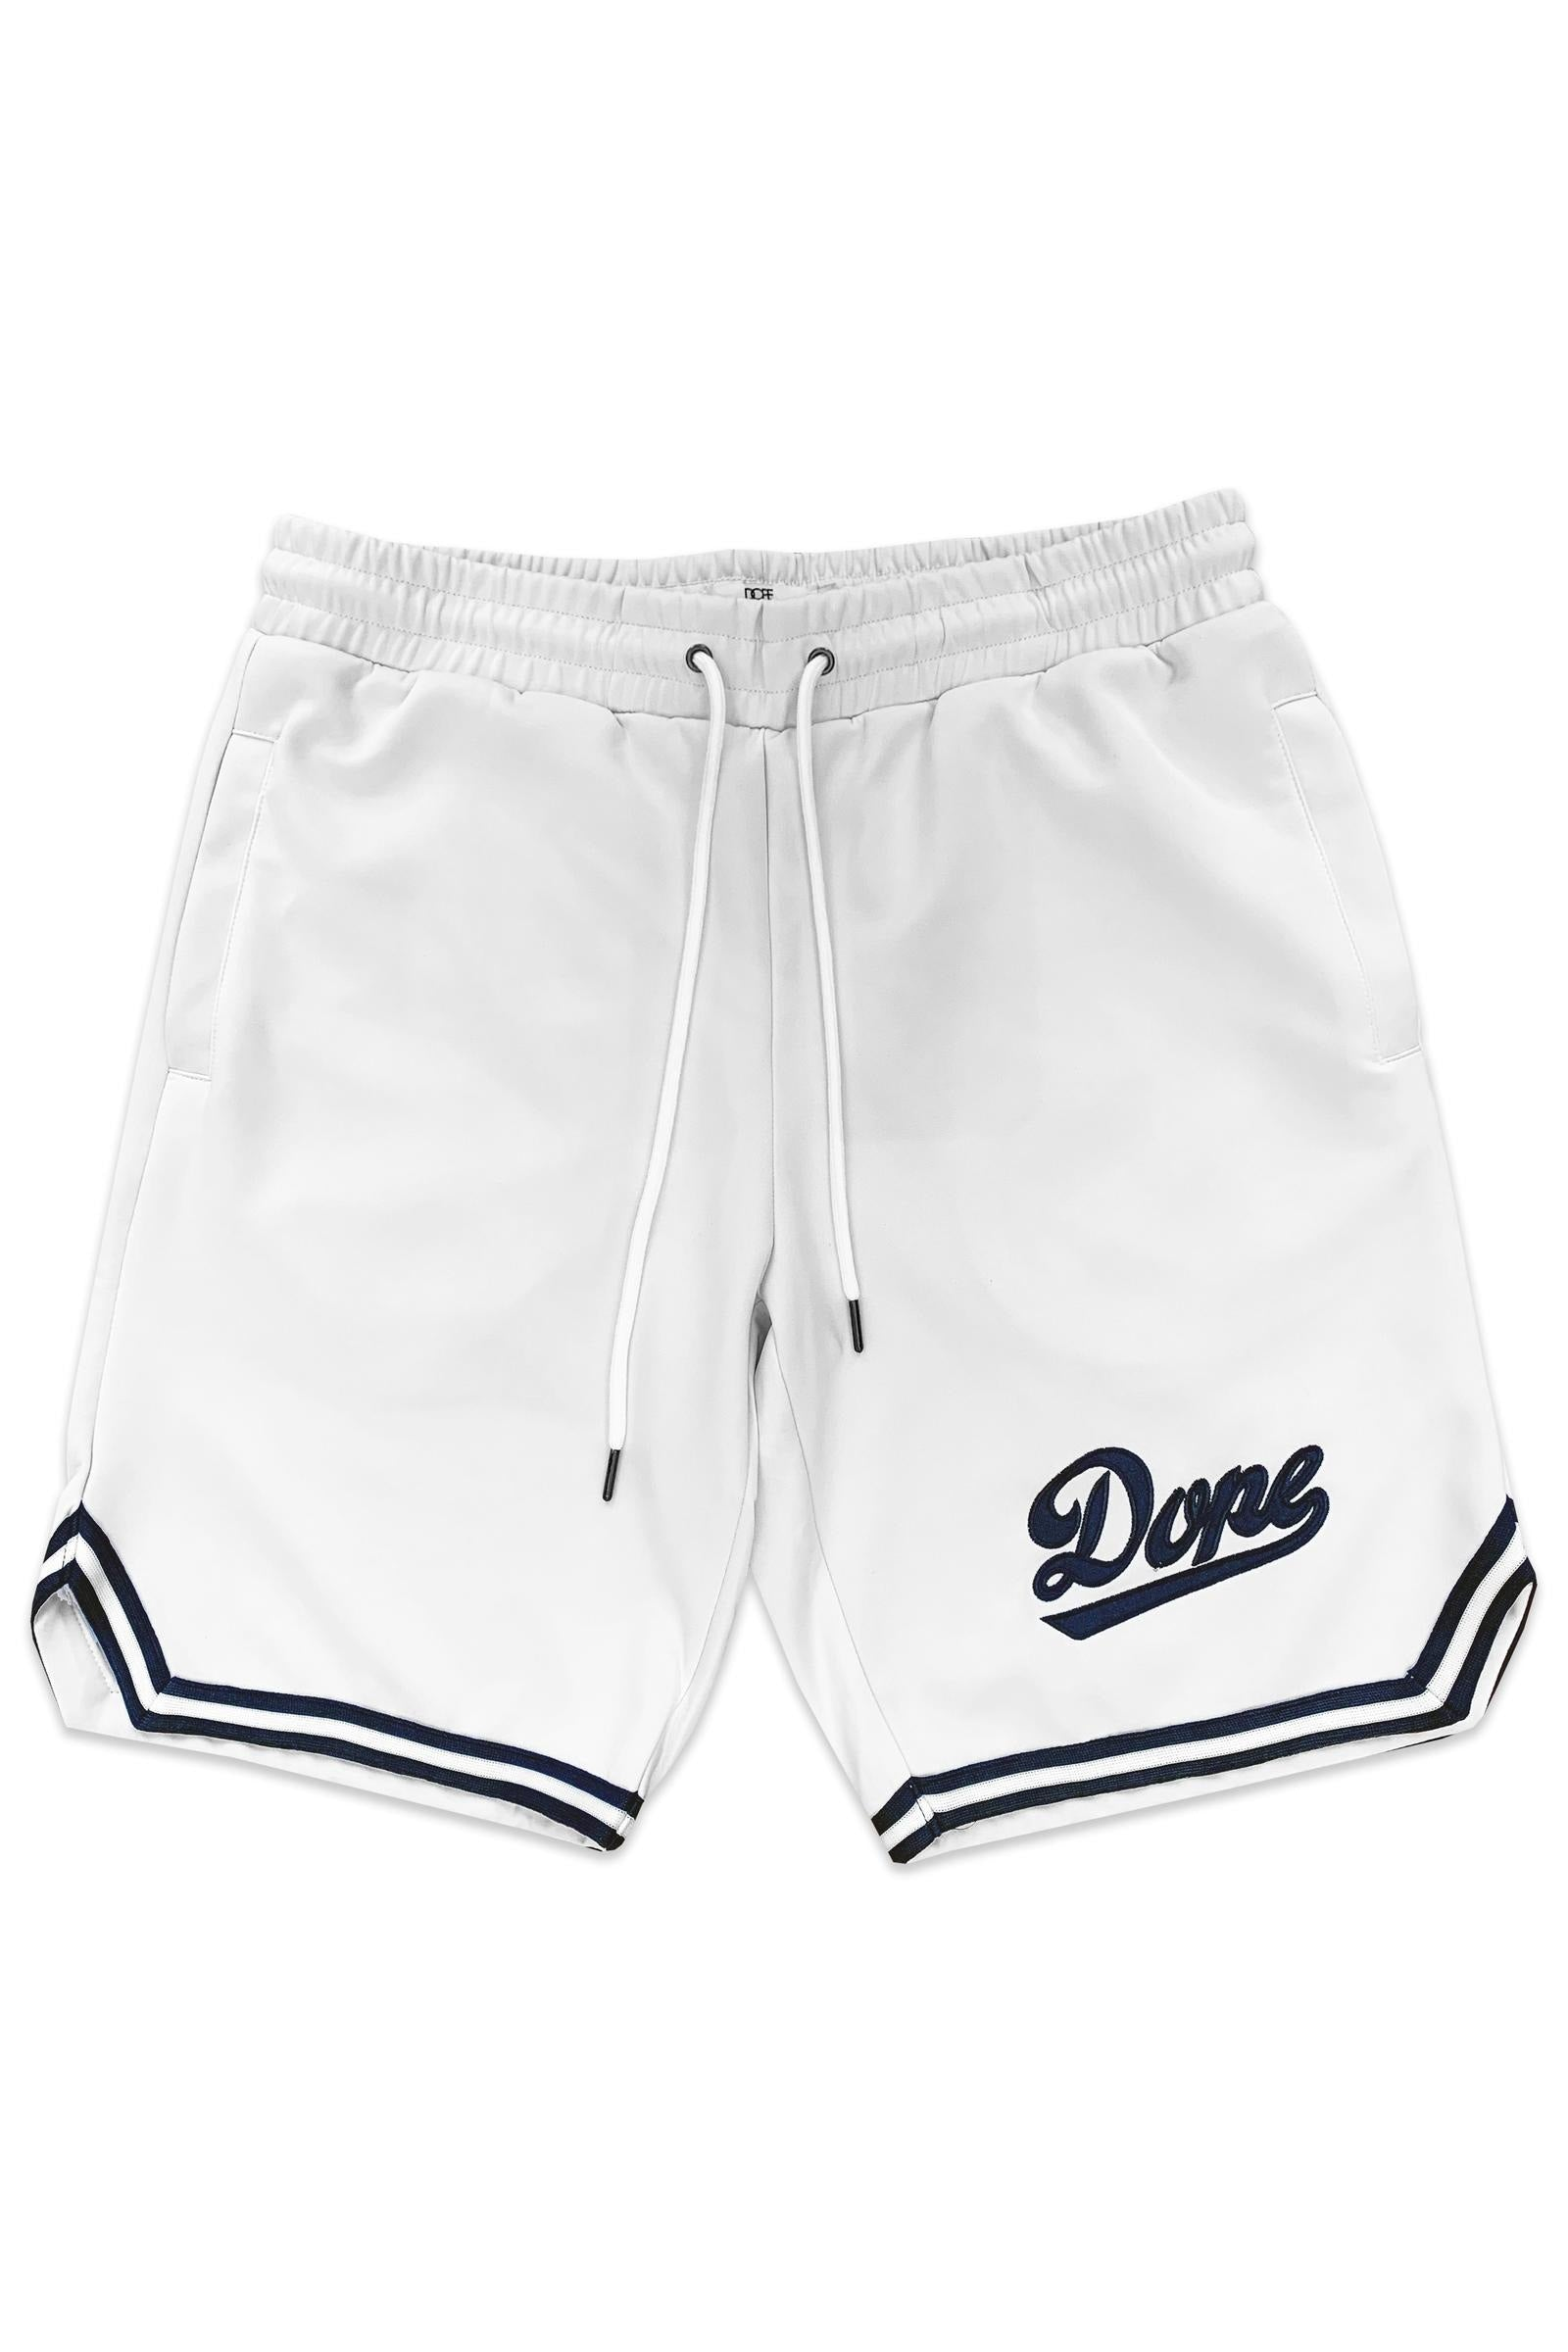 Infield Baseball Shorts (White/Navy) / C4